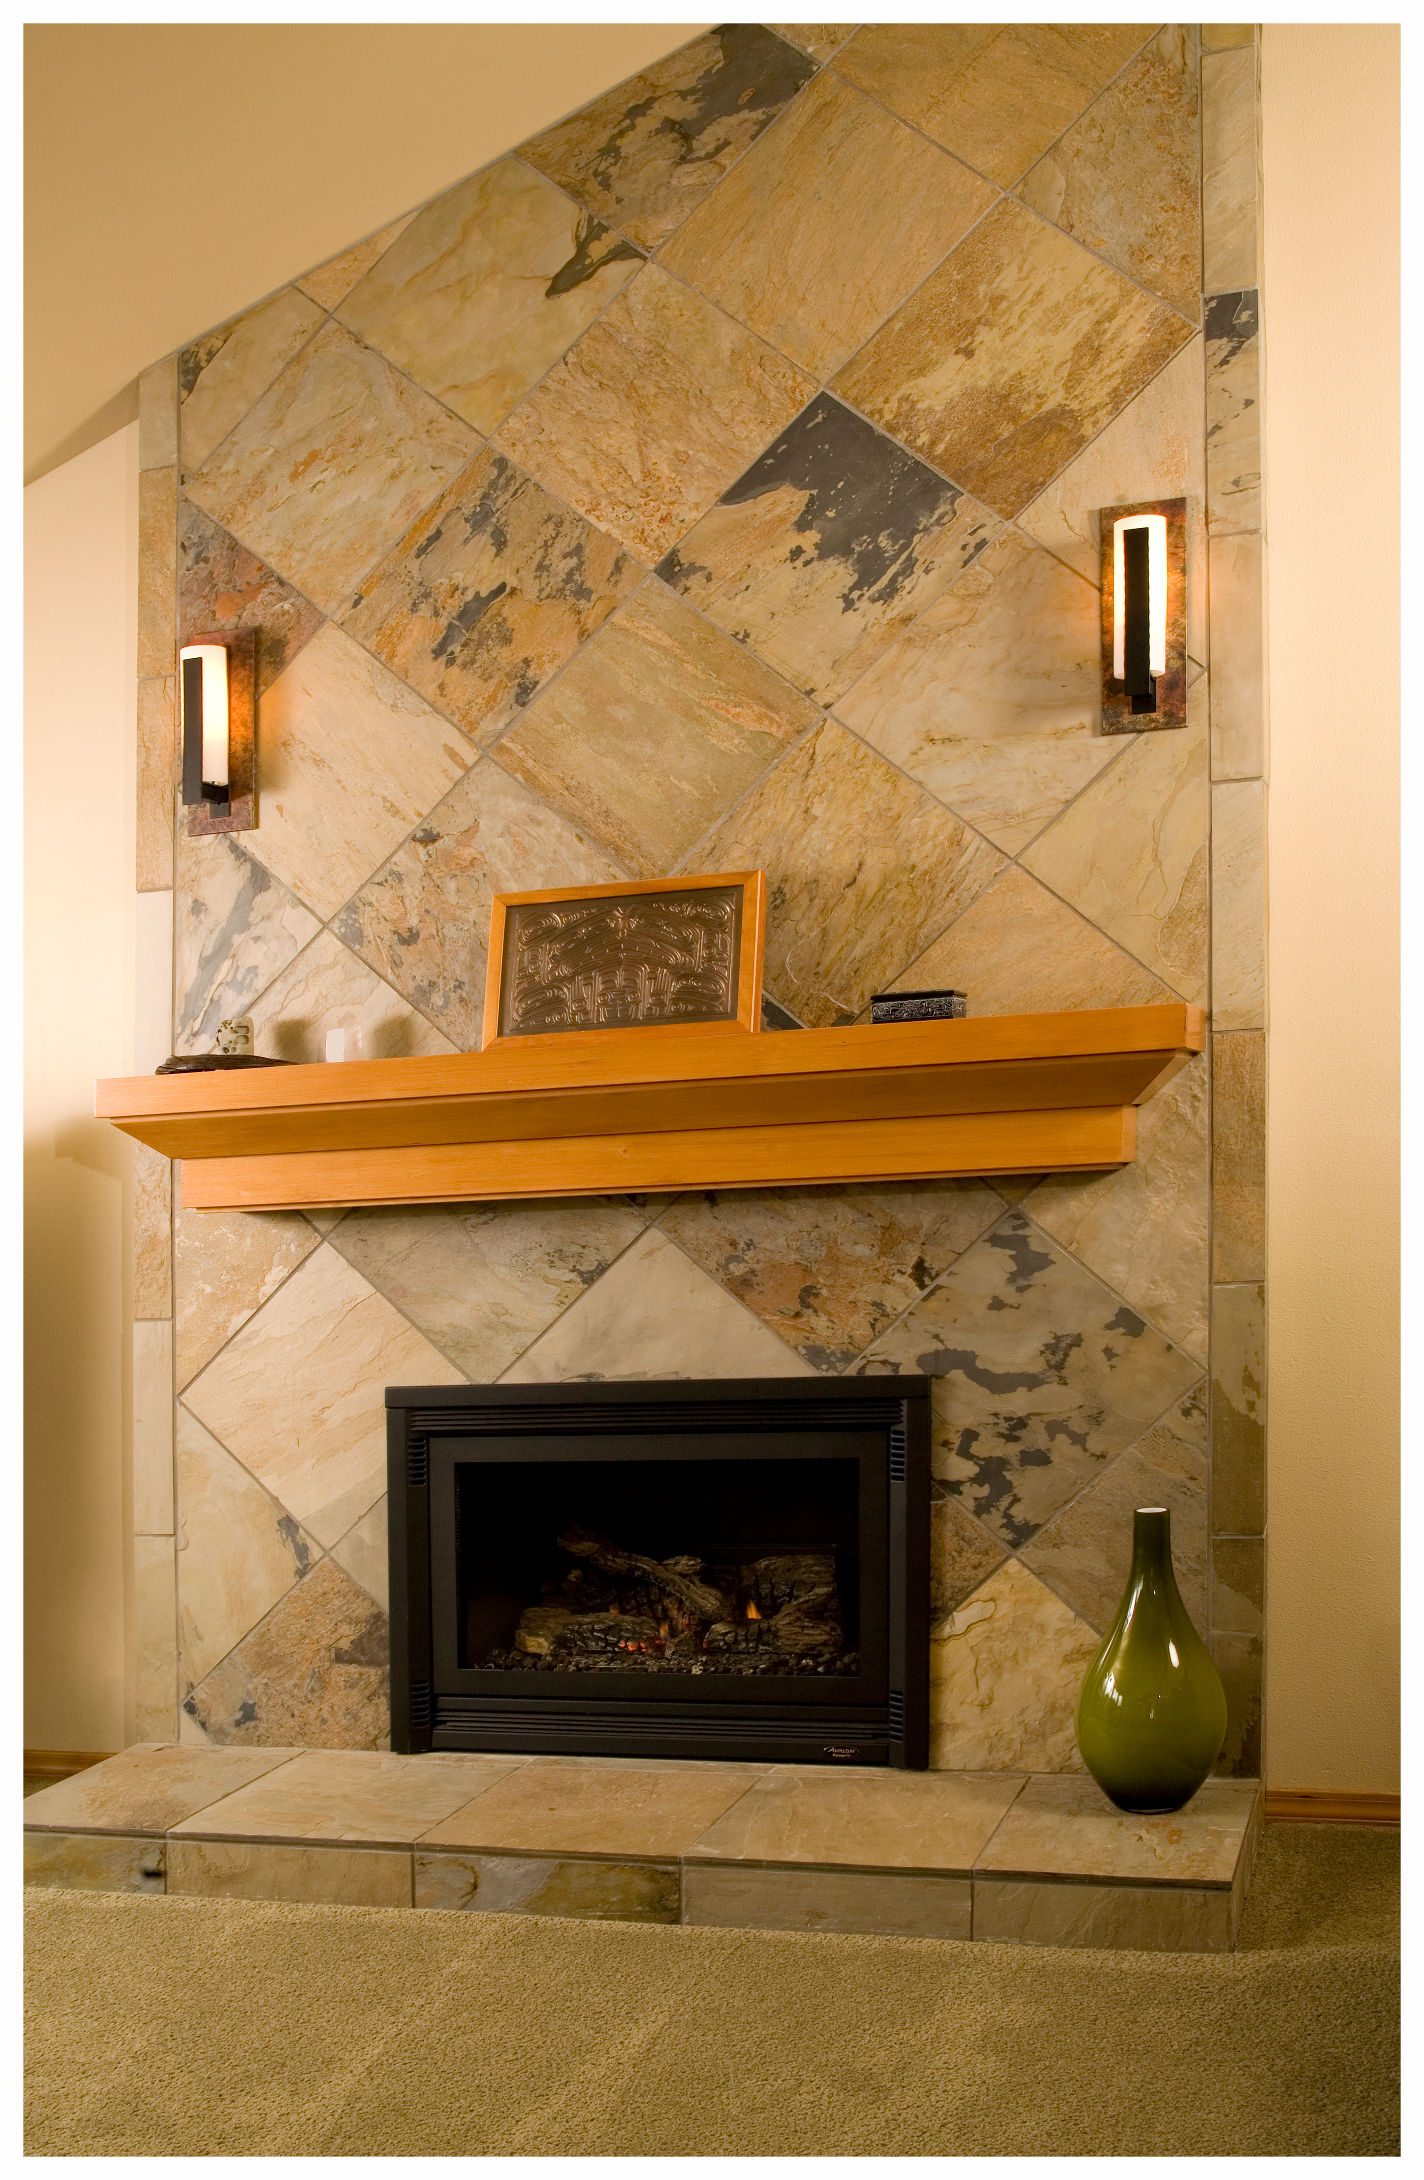 Fireplace 9.png